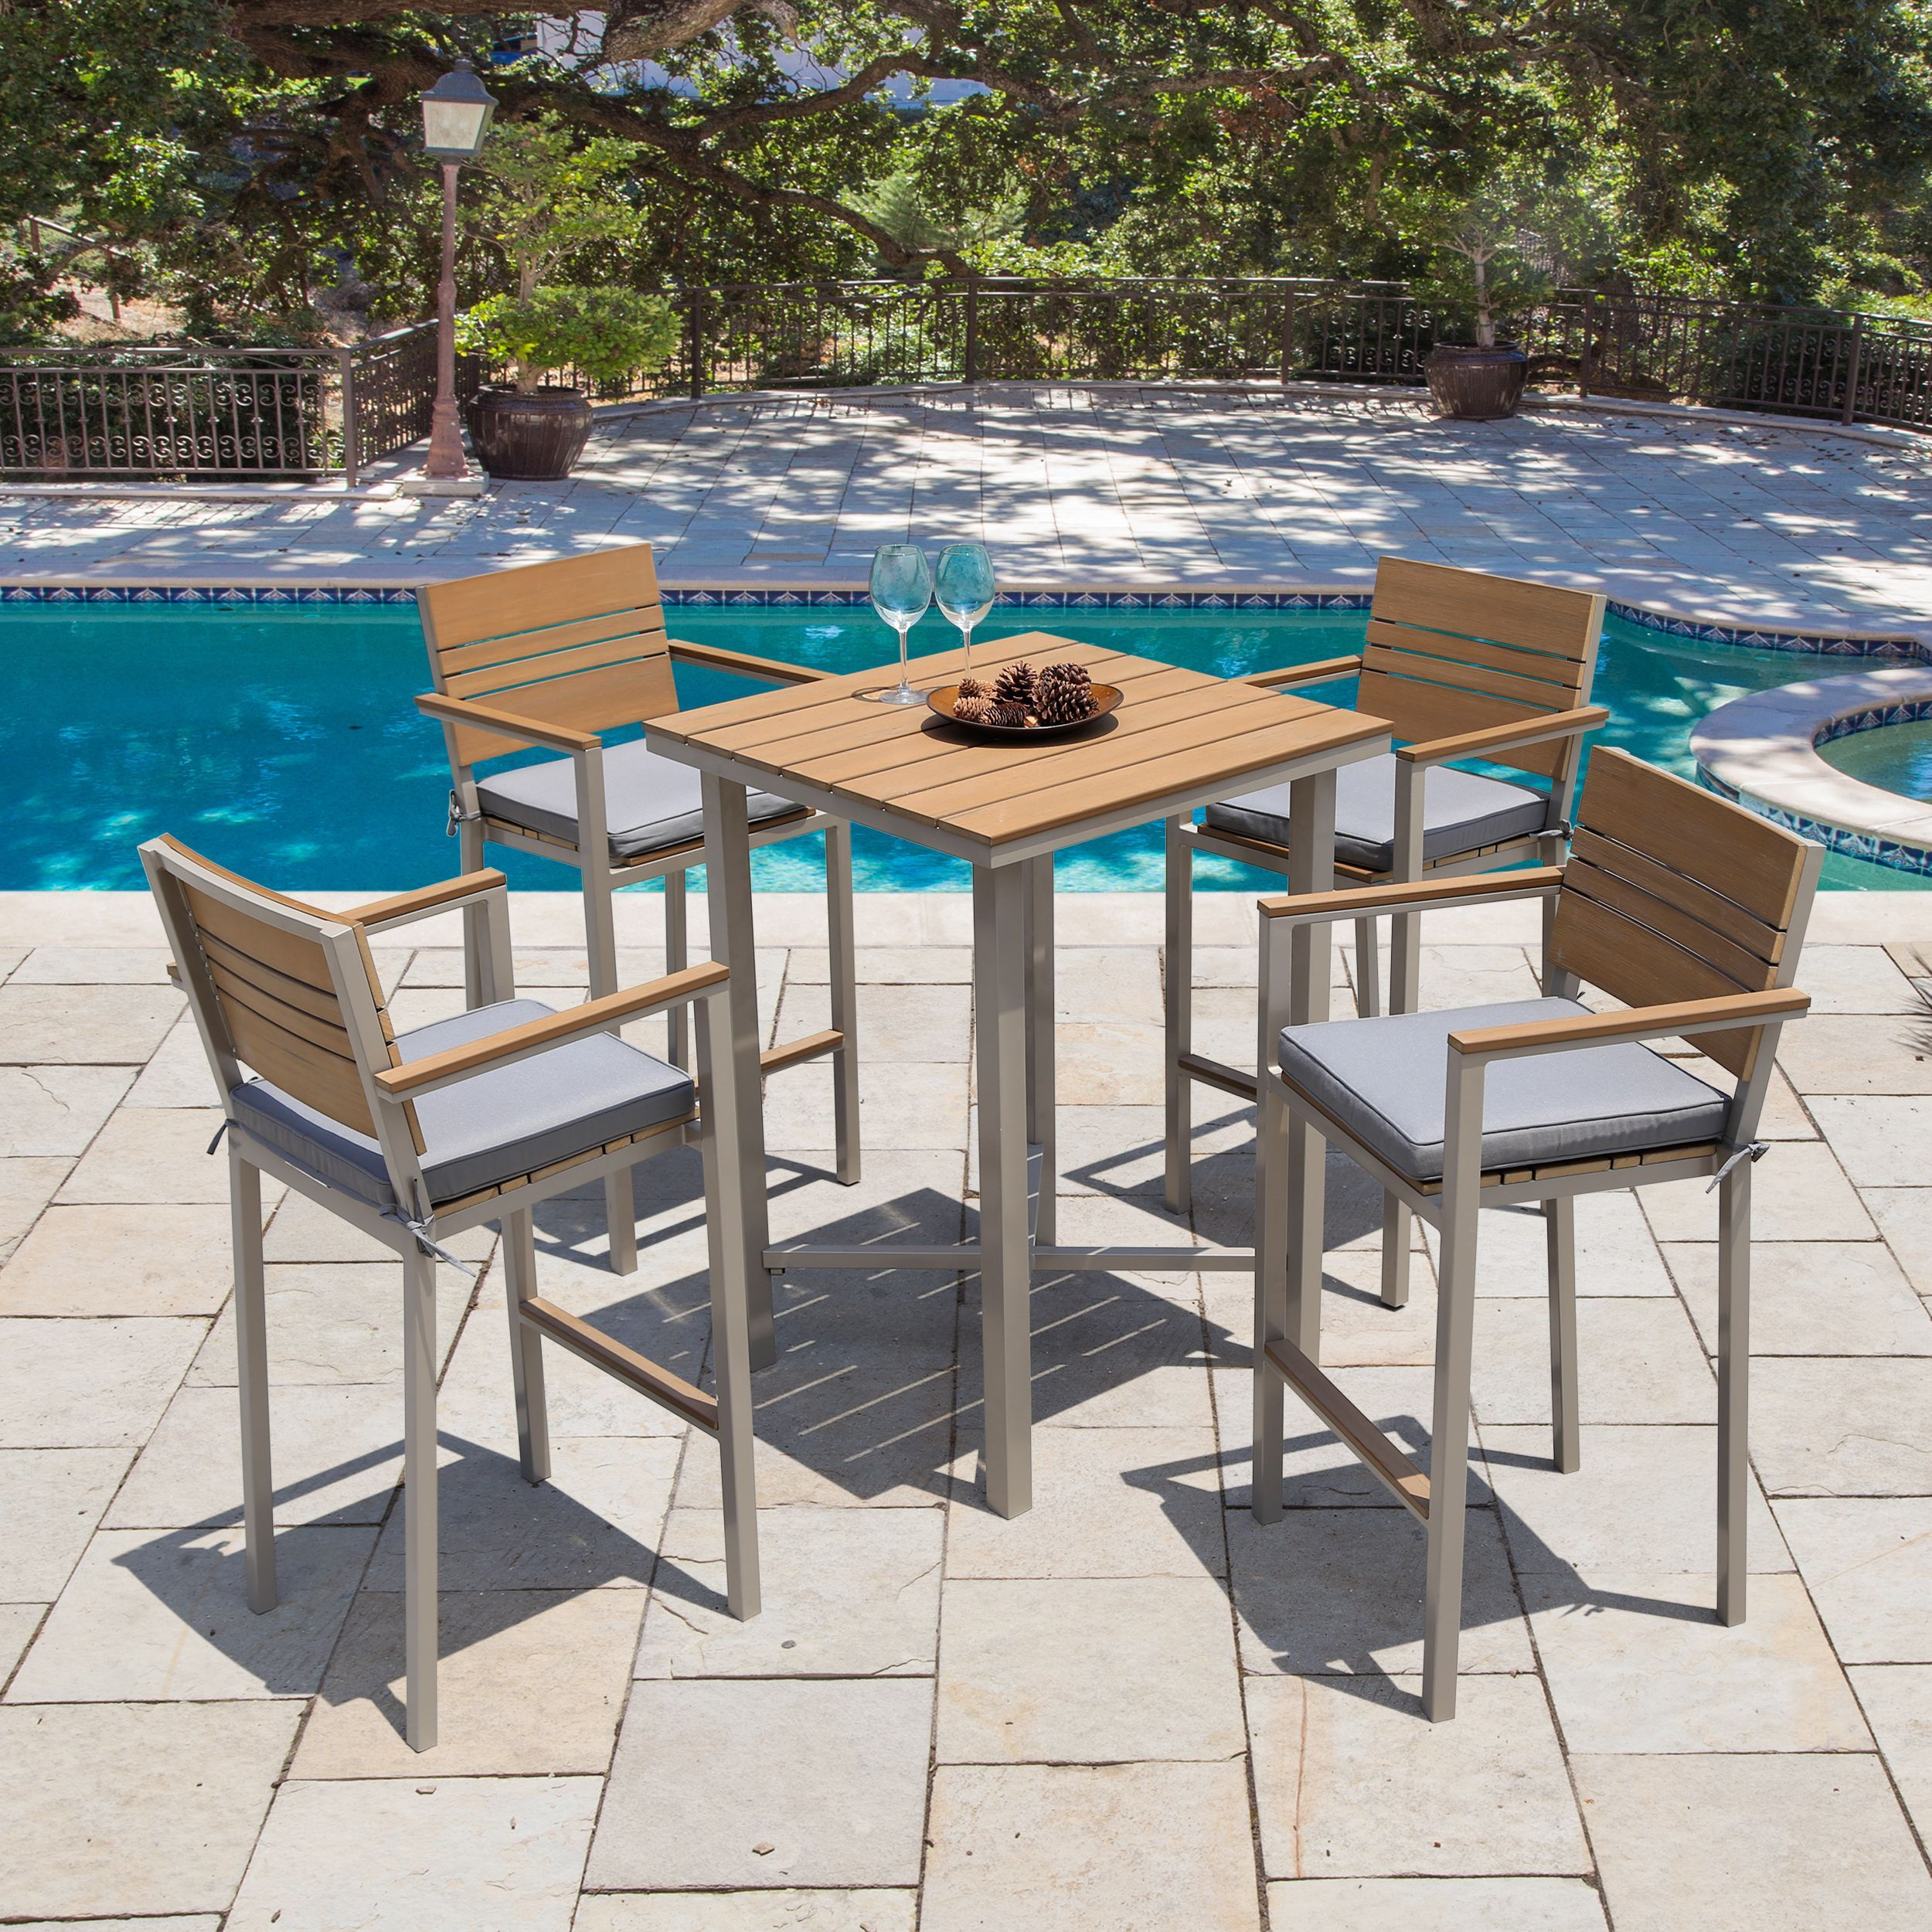 This Outdoor Patio Bar Set Will Help You Entertain In Style